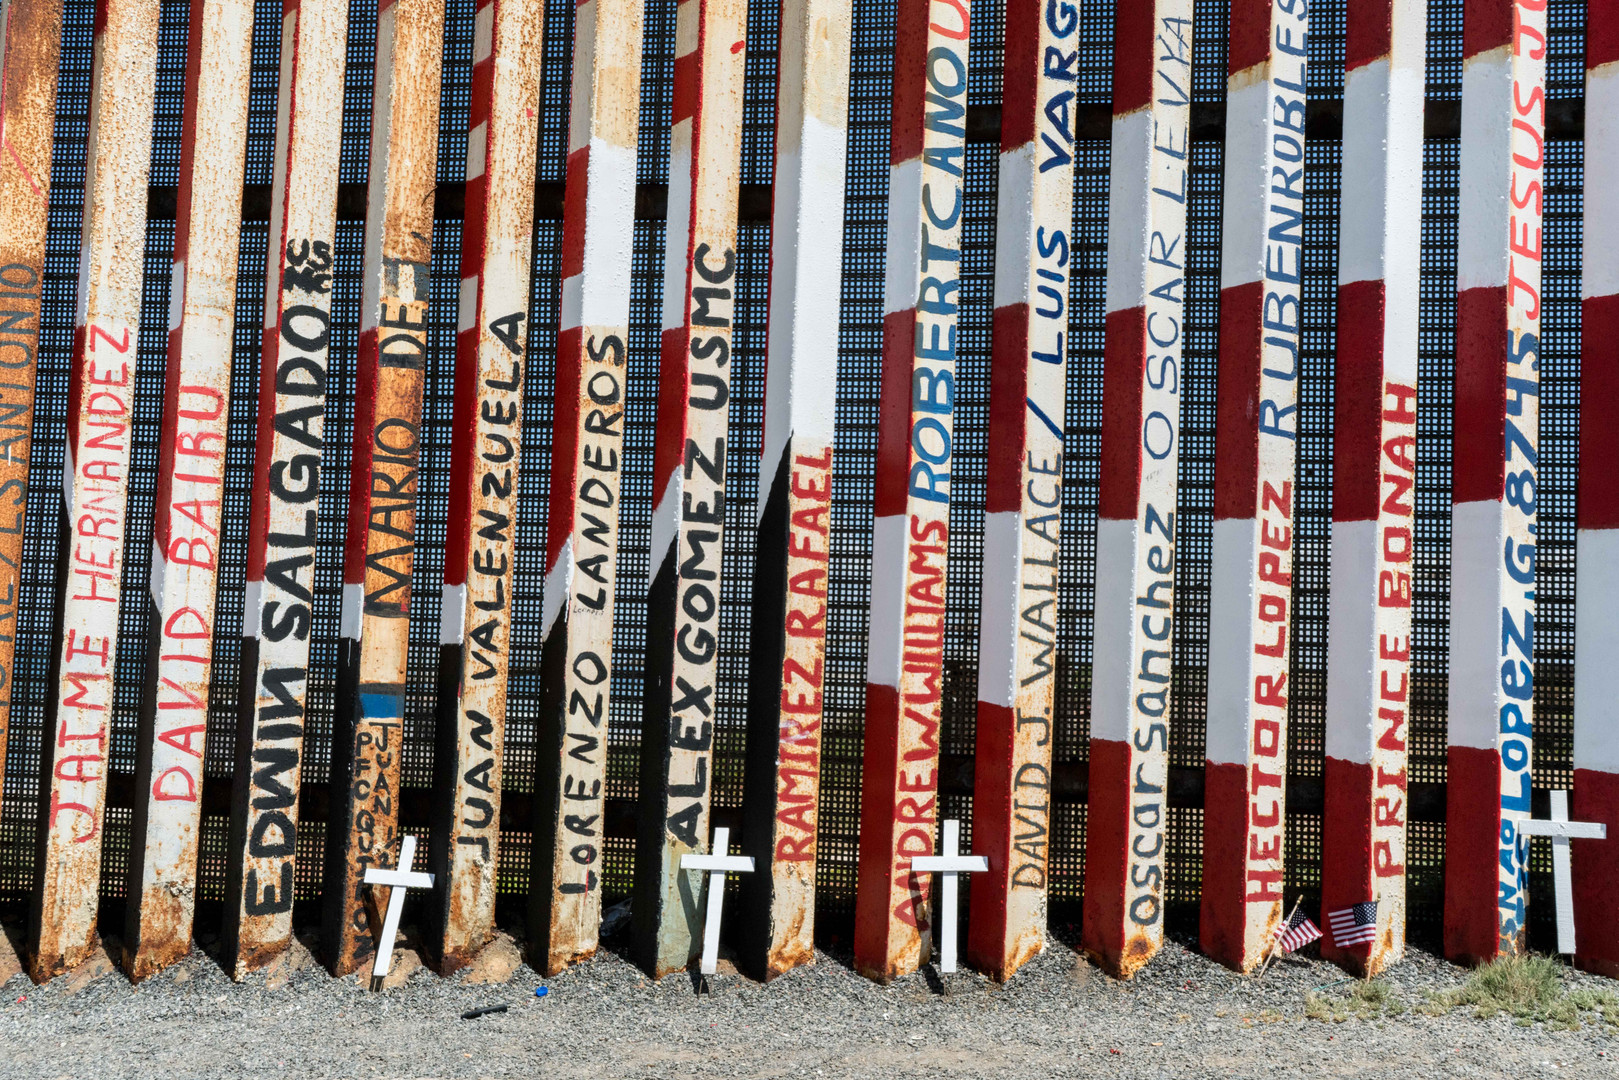 Names of deported veterans painted on the border wall